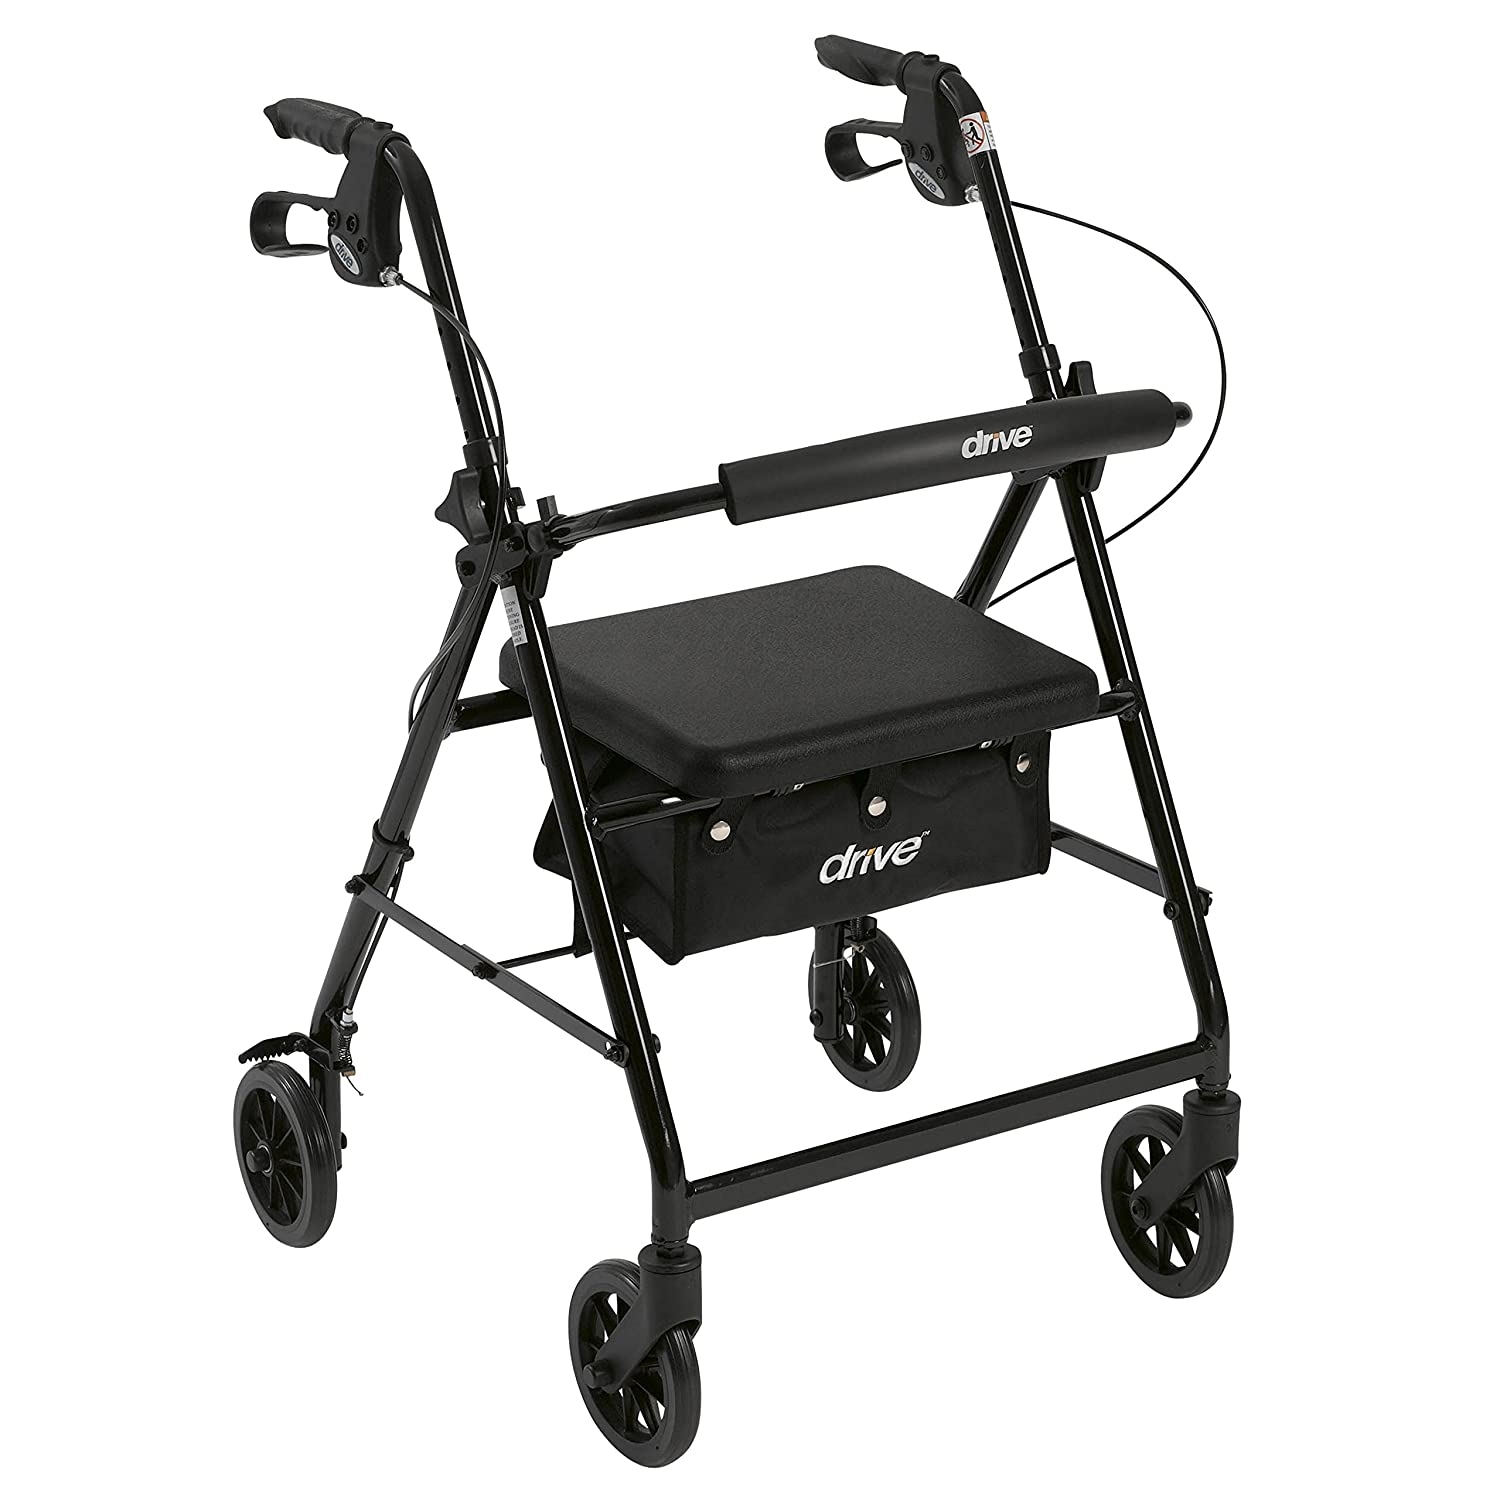 "Drive Medical Aluminum Rollator Walker Fold Up and Removable Back Support, Padded Seat, 6"" Wheels, Black 81WKr5keEQL"